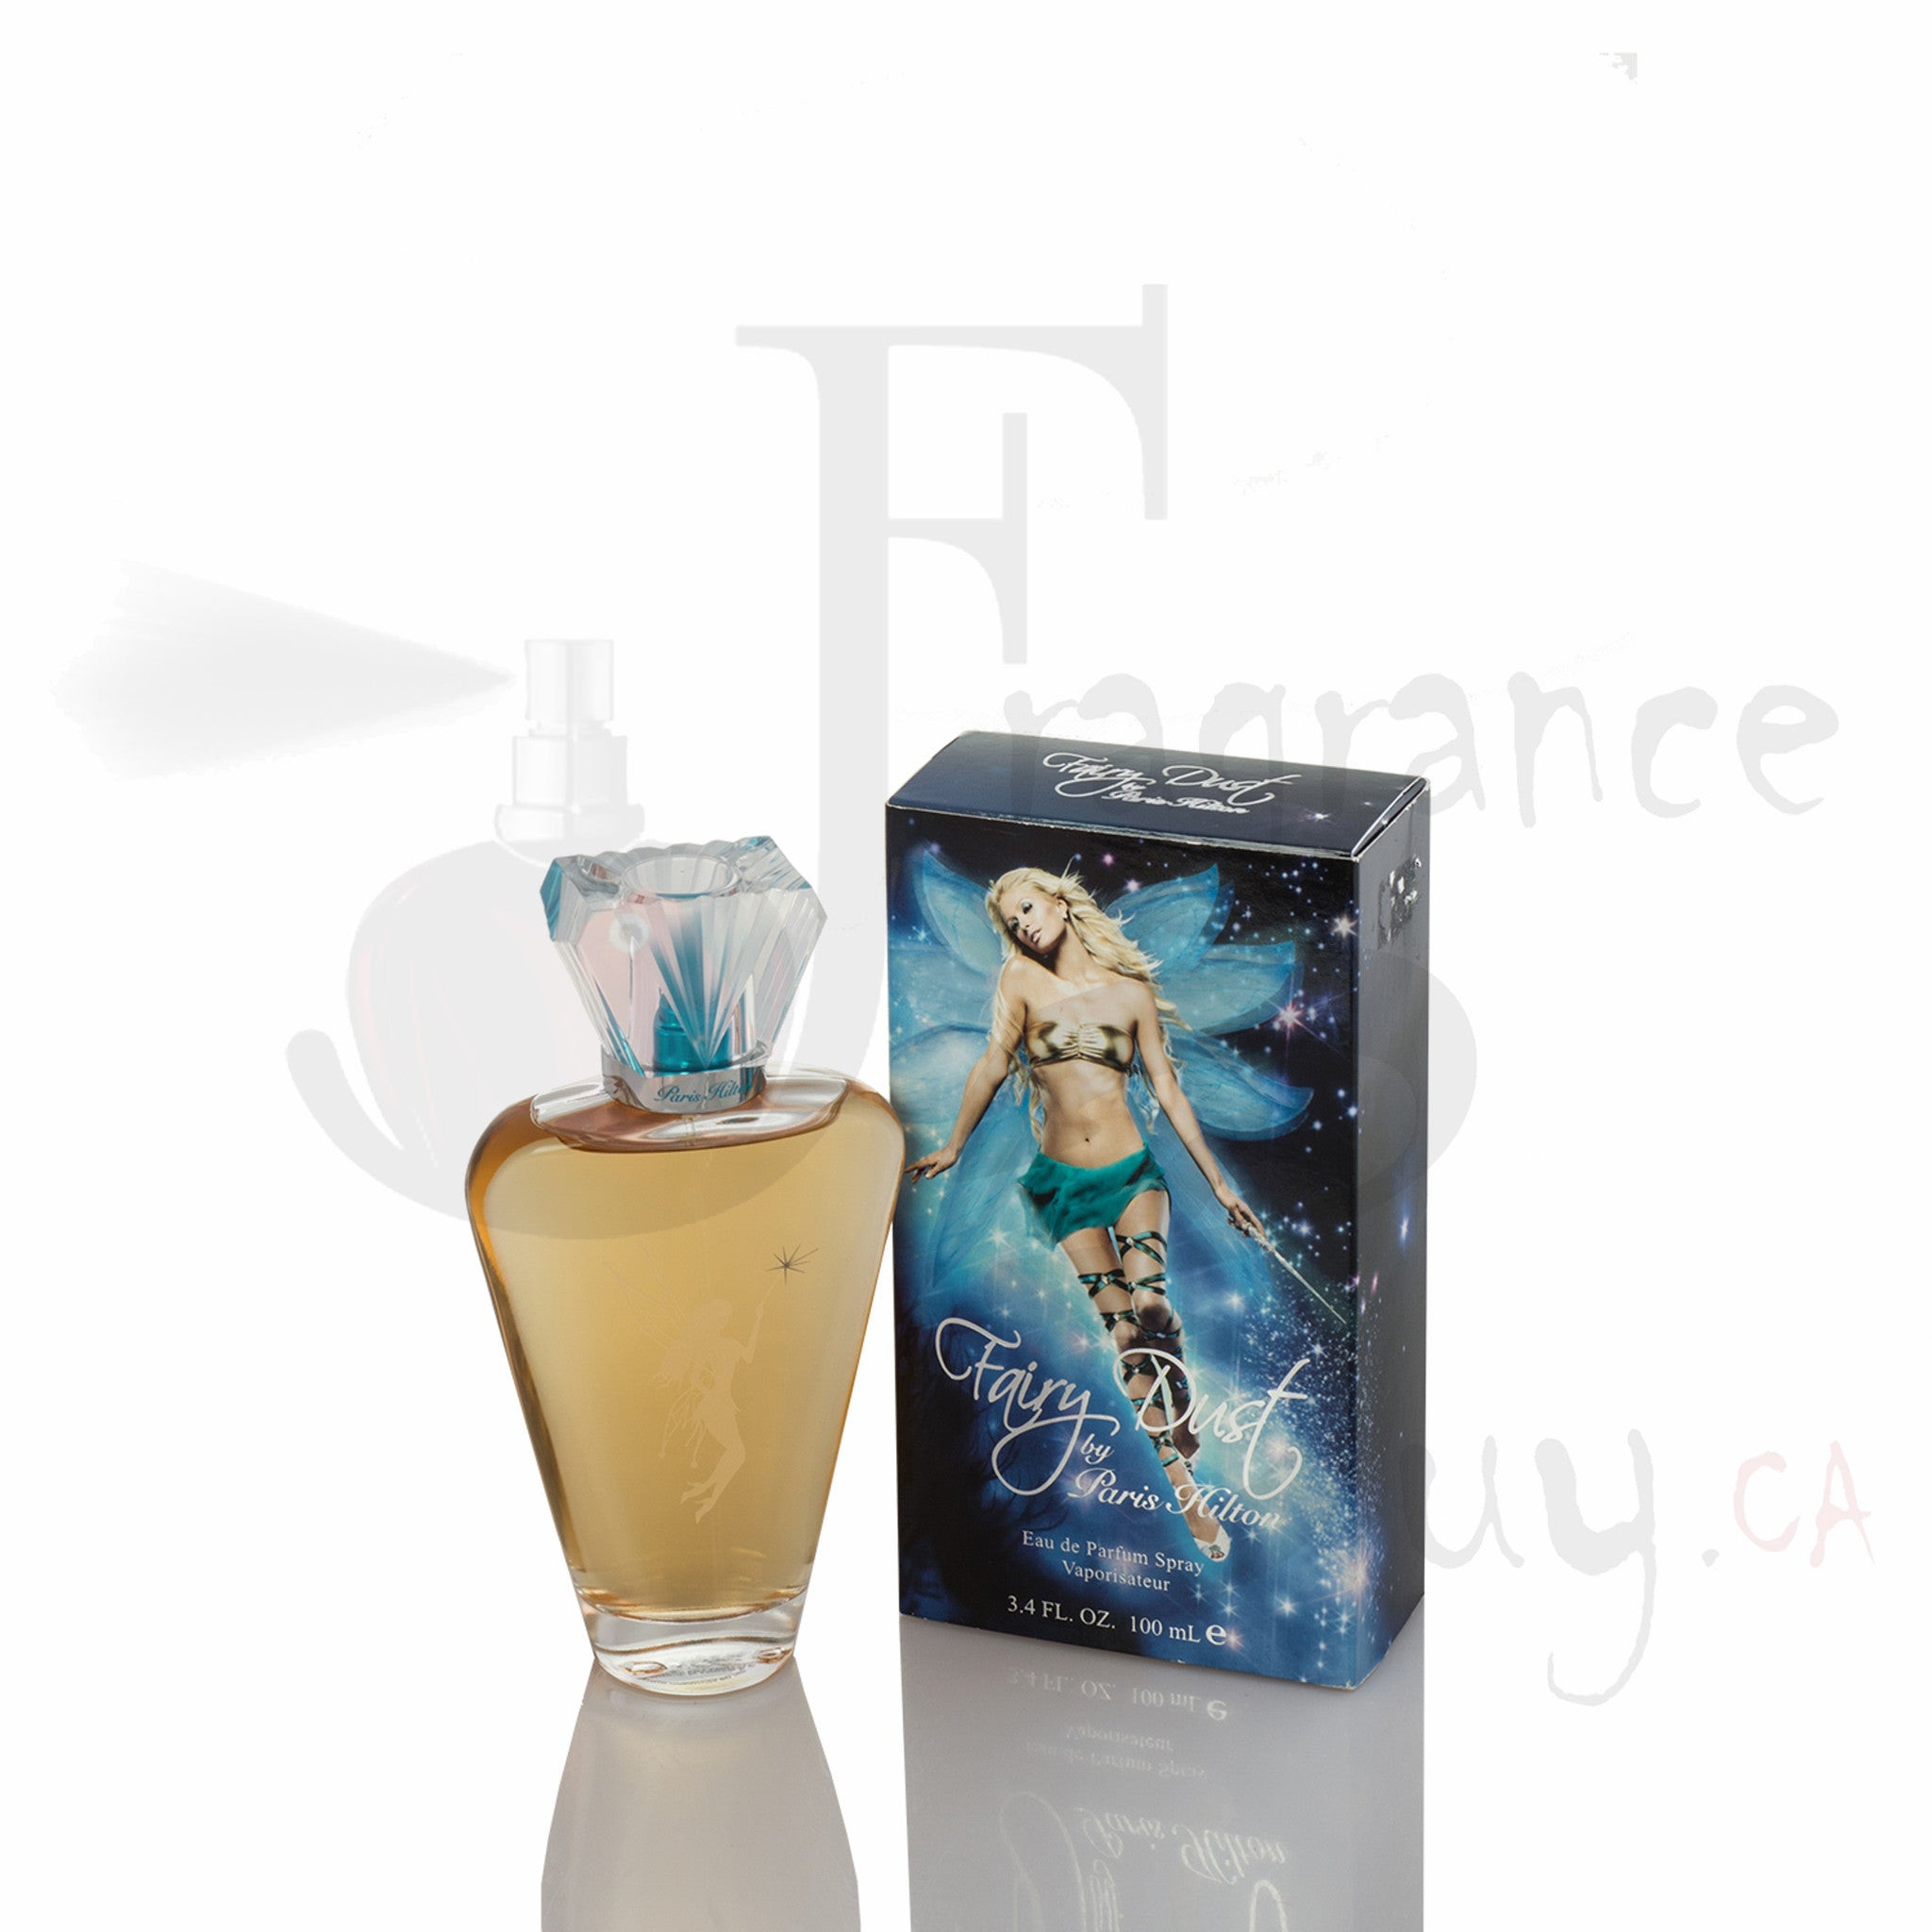 Paris Hilton Fairy Dust For Woman